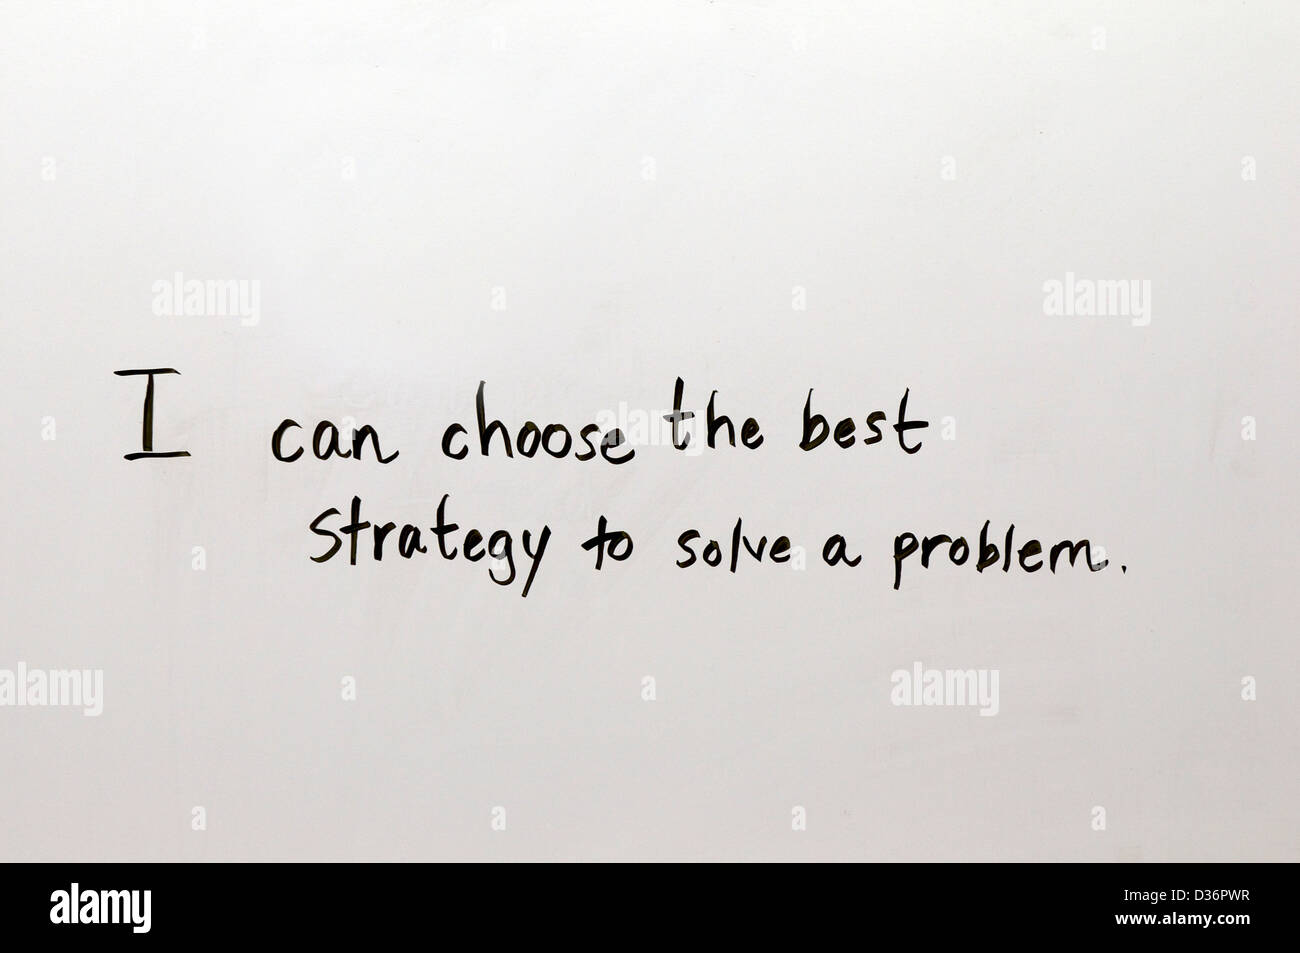 School lesson: I can choose the best strategy to solve a problem. - Stock Image